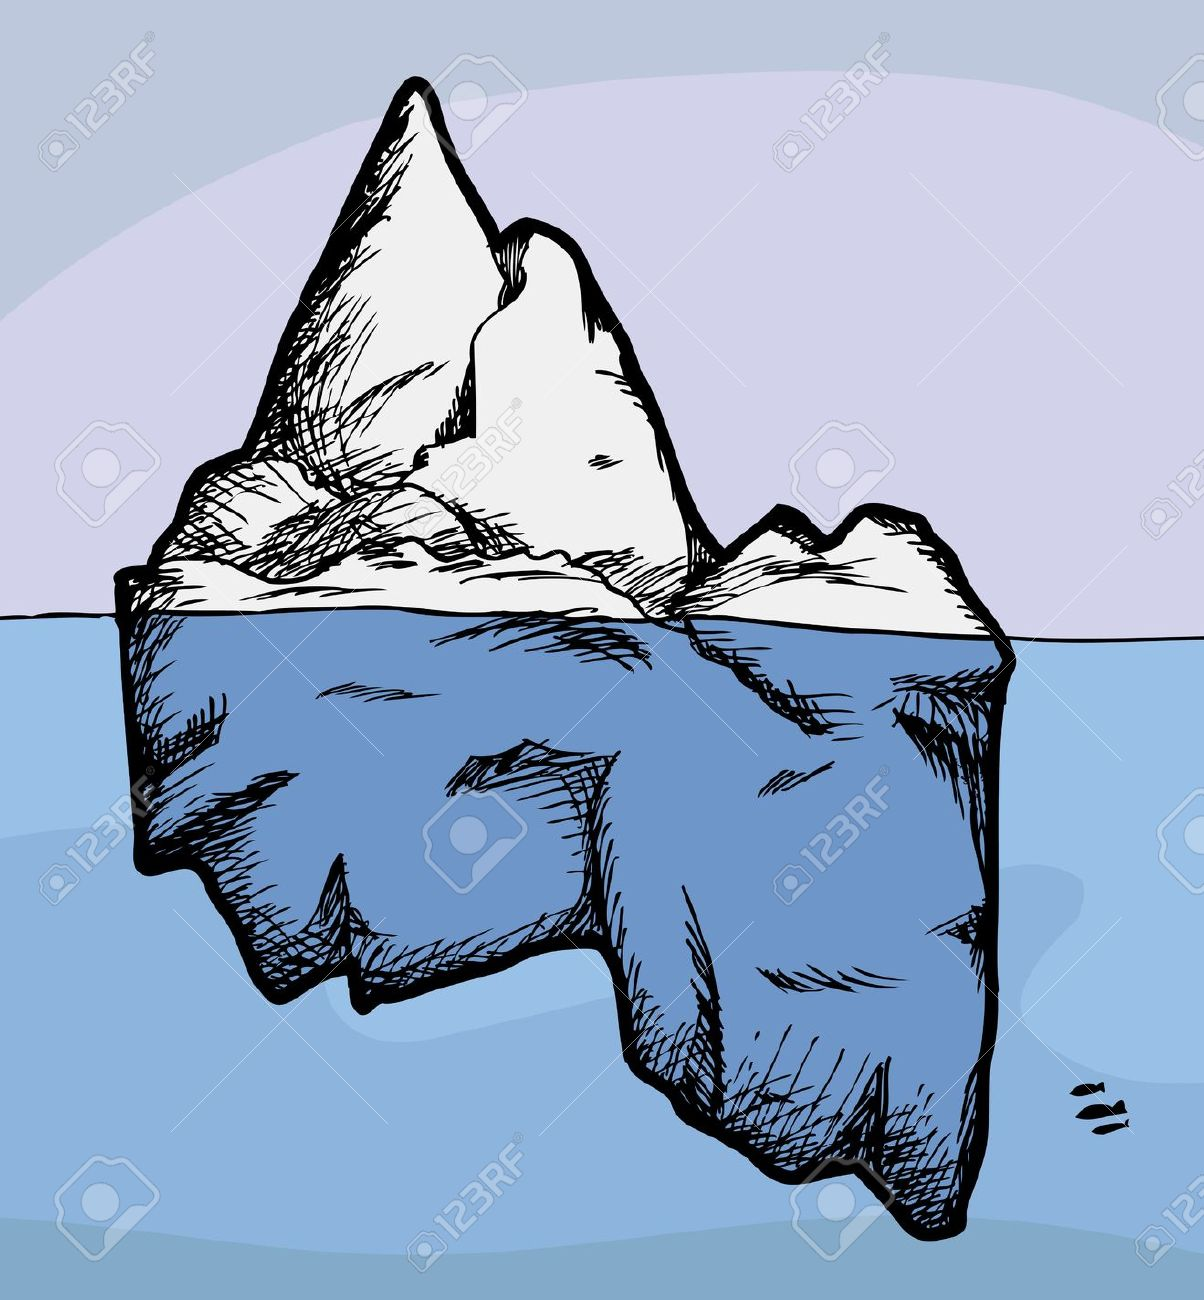 free iceberg coloring pages - photo#8